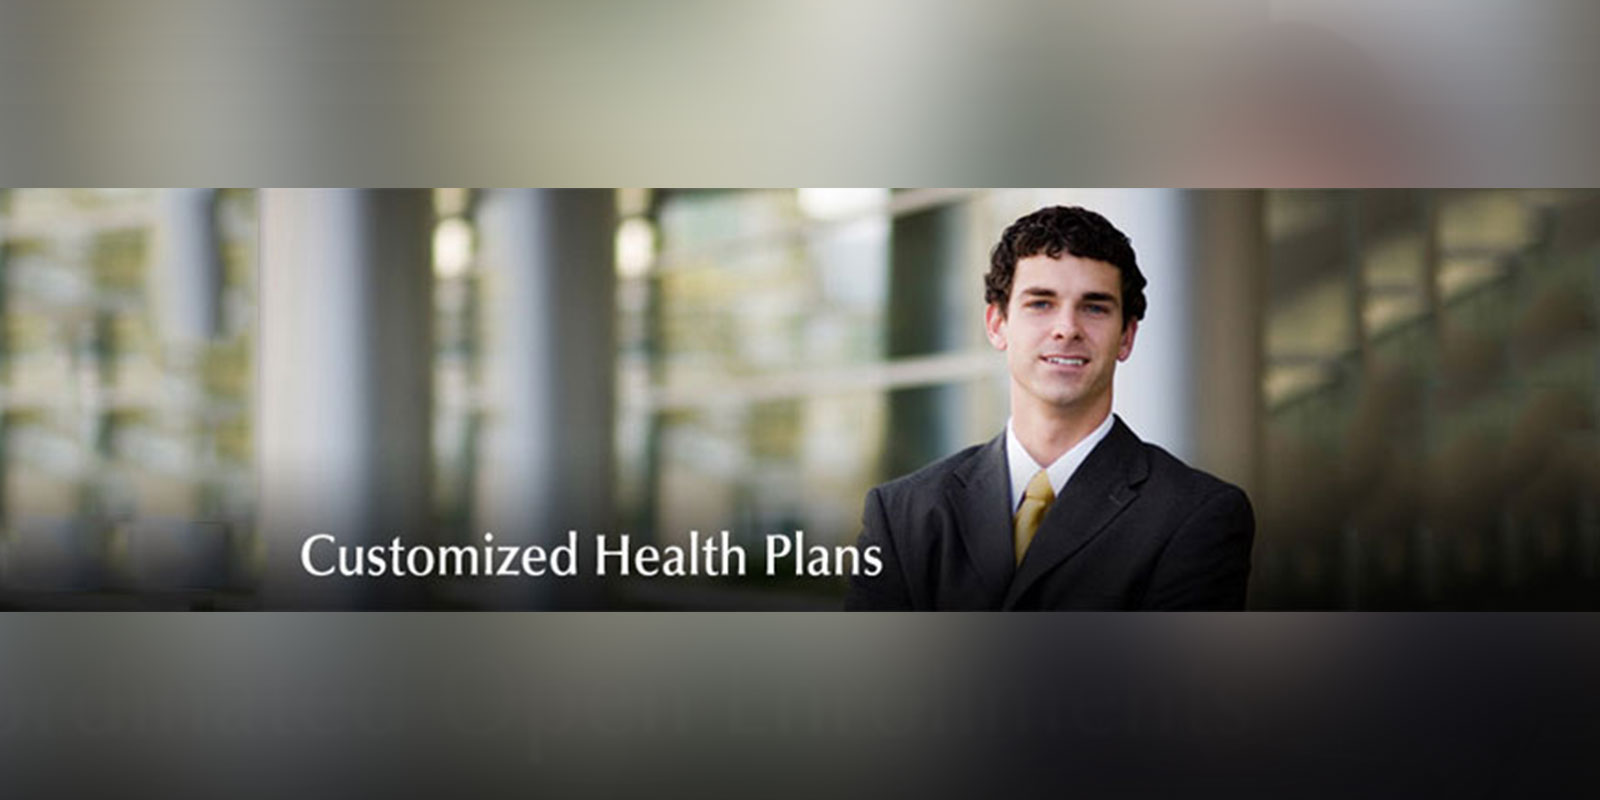 Fully Insured Plans